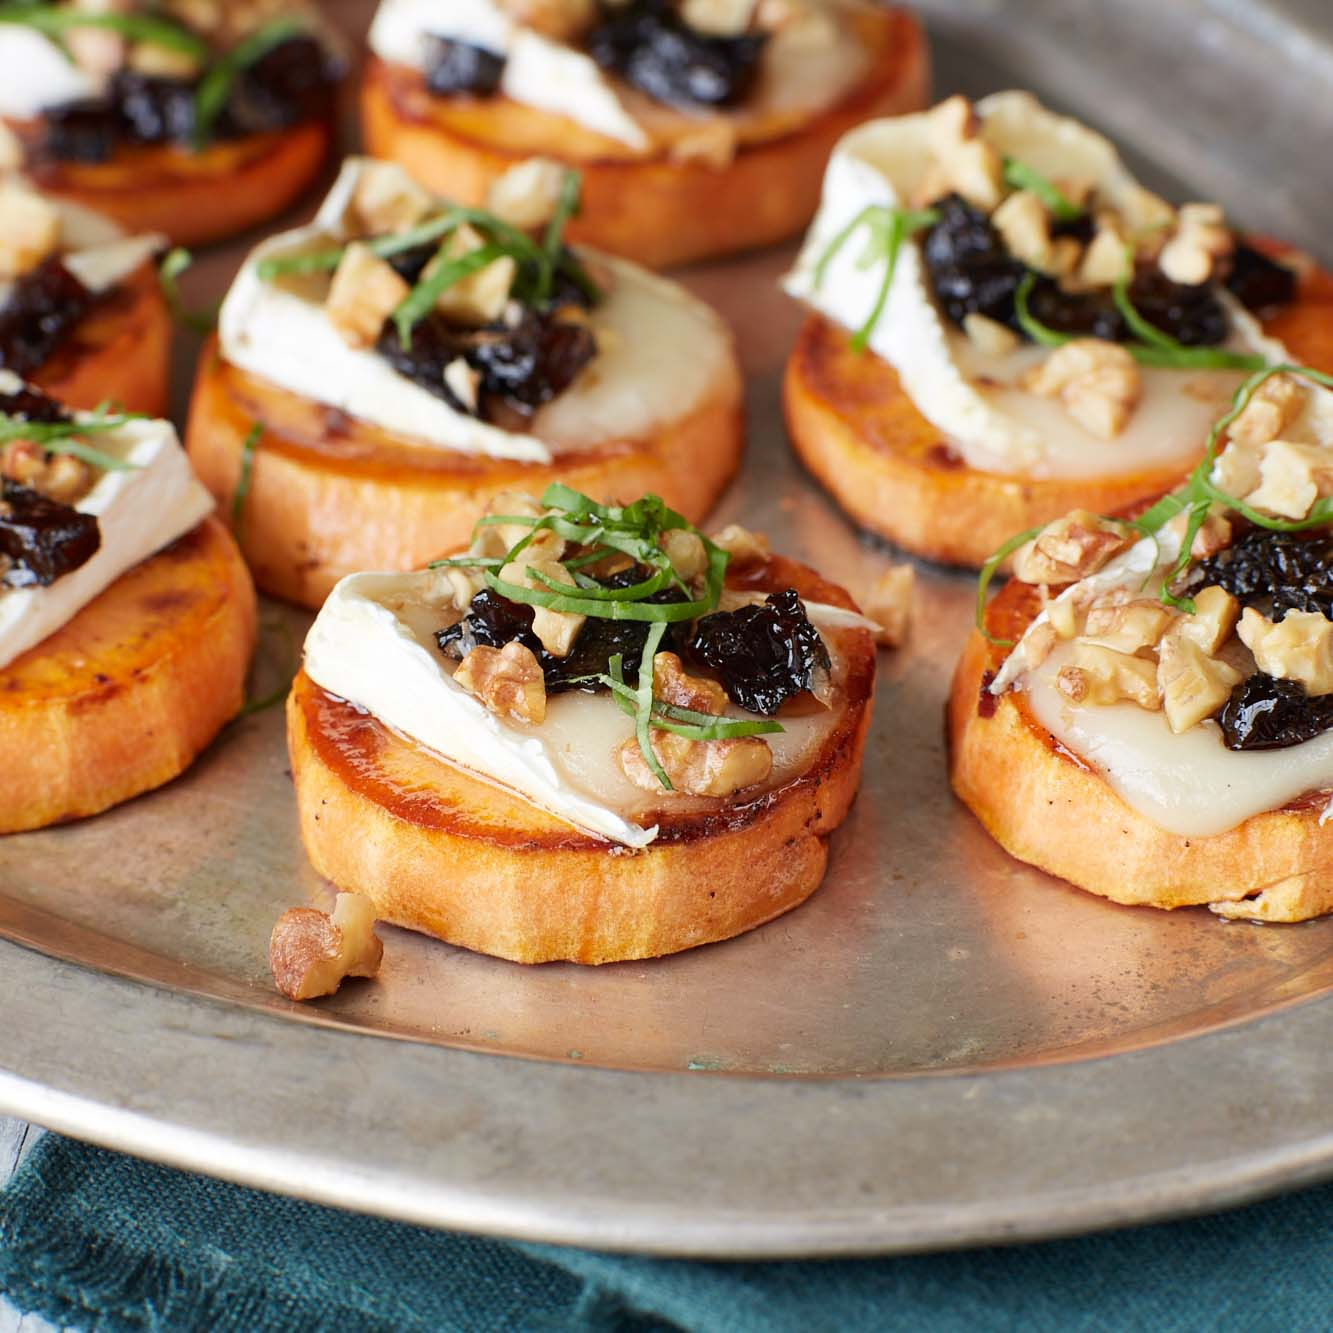 <p>With the sweet potatoes taking the place of bread, this simple but decadent recipe is the gluten-free answer to classic crostini. Mixing prunes with vinegar and oil gives the crostini a savory edge.</p>